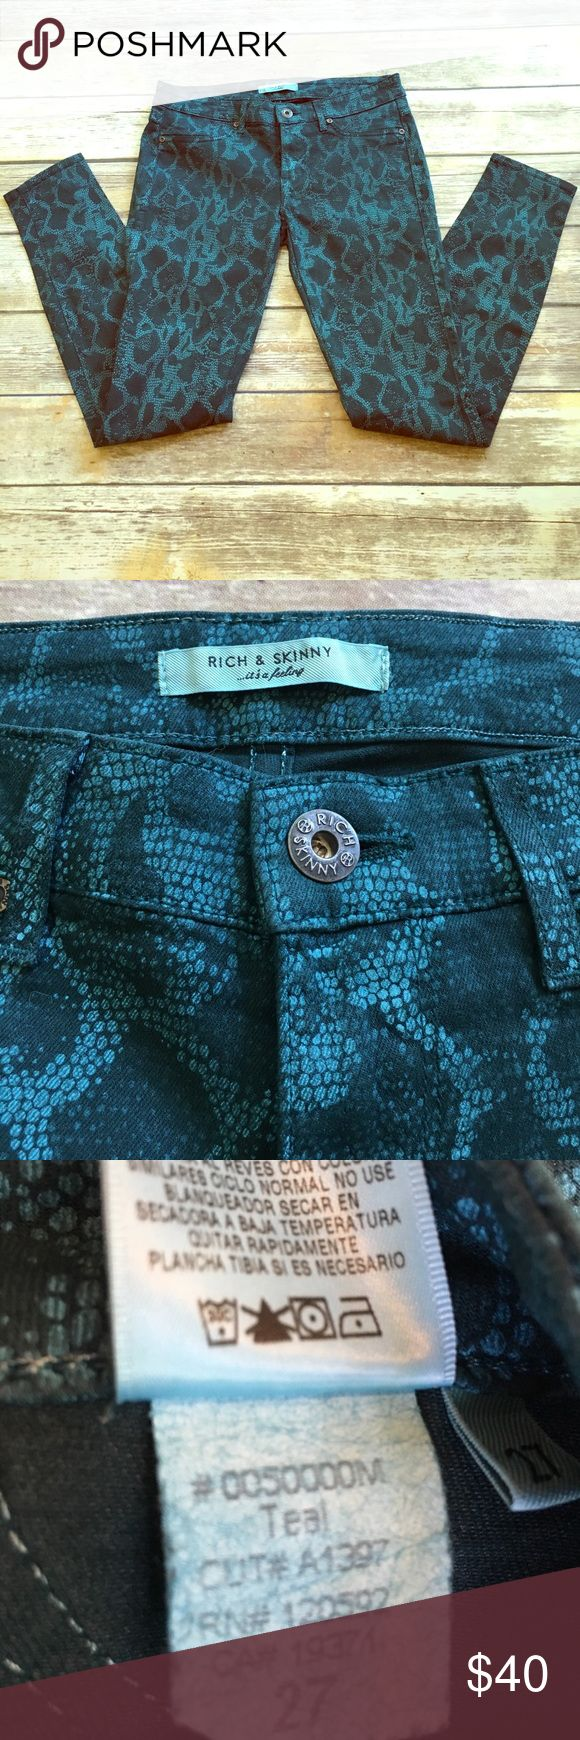 Rich & Skinny Teal snake pants 27 Rich & Skinny snake print pants size 27. These are shades of teal. Rich & Skinny Jeans Skinny